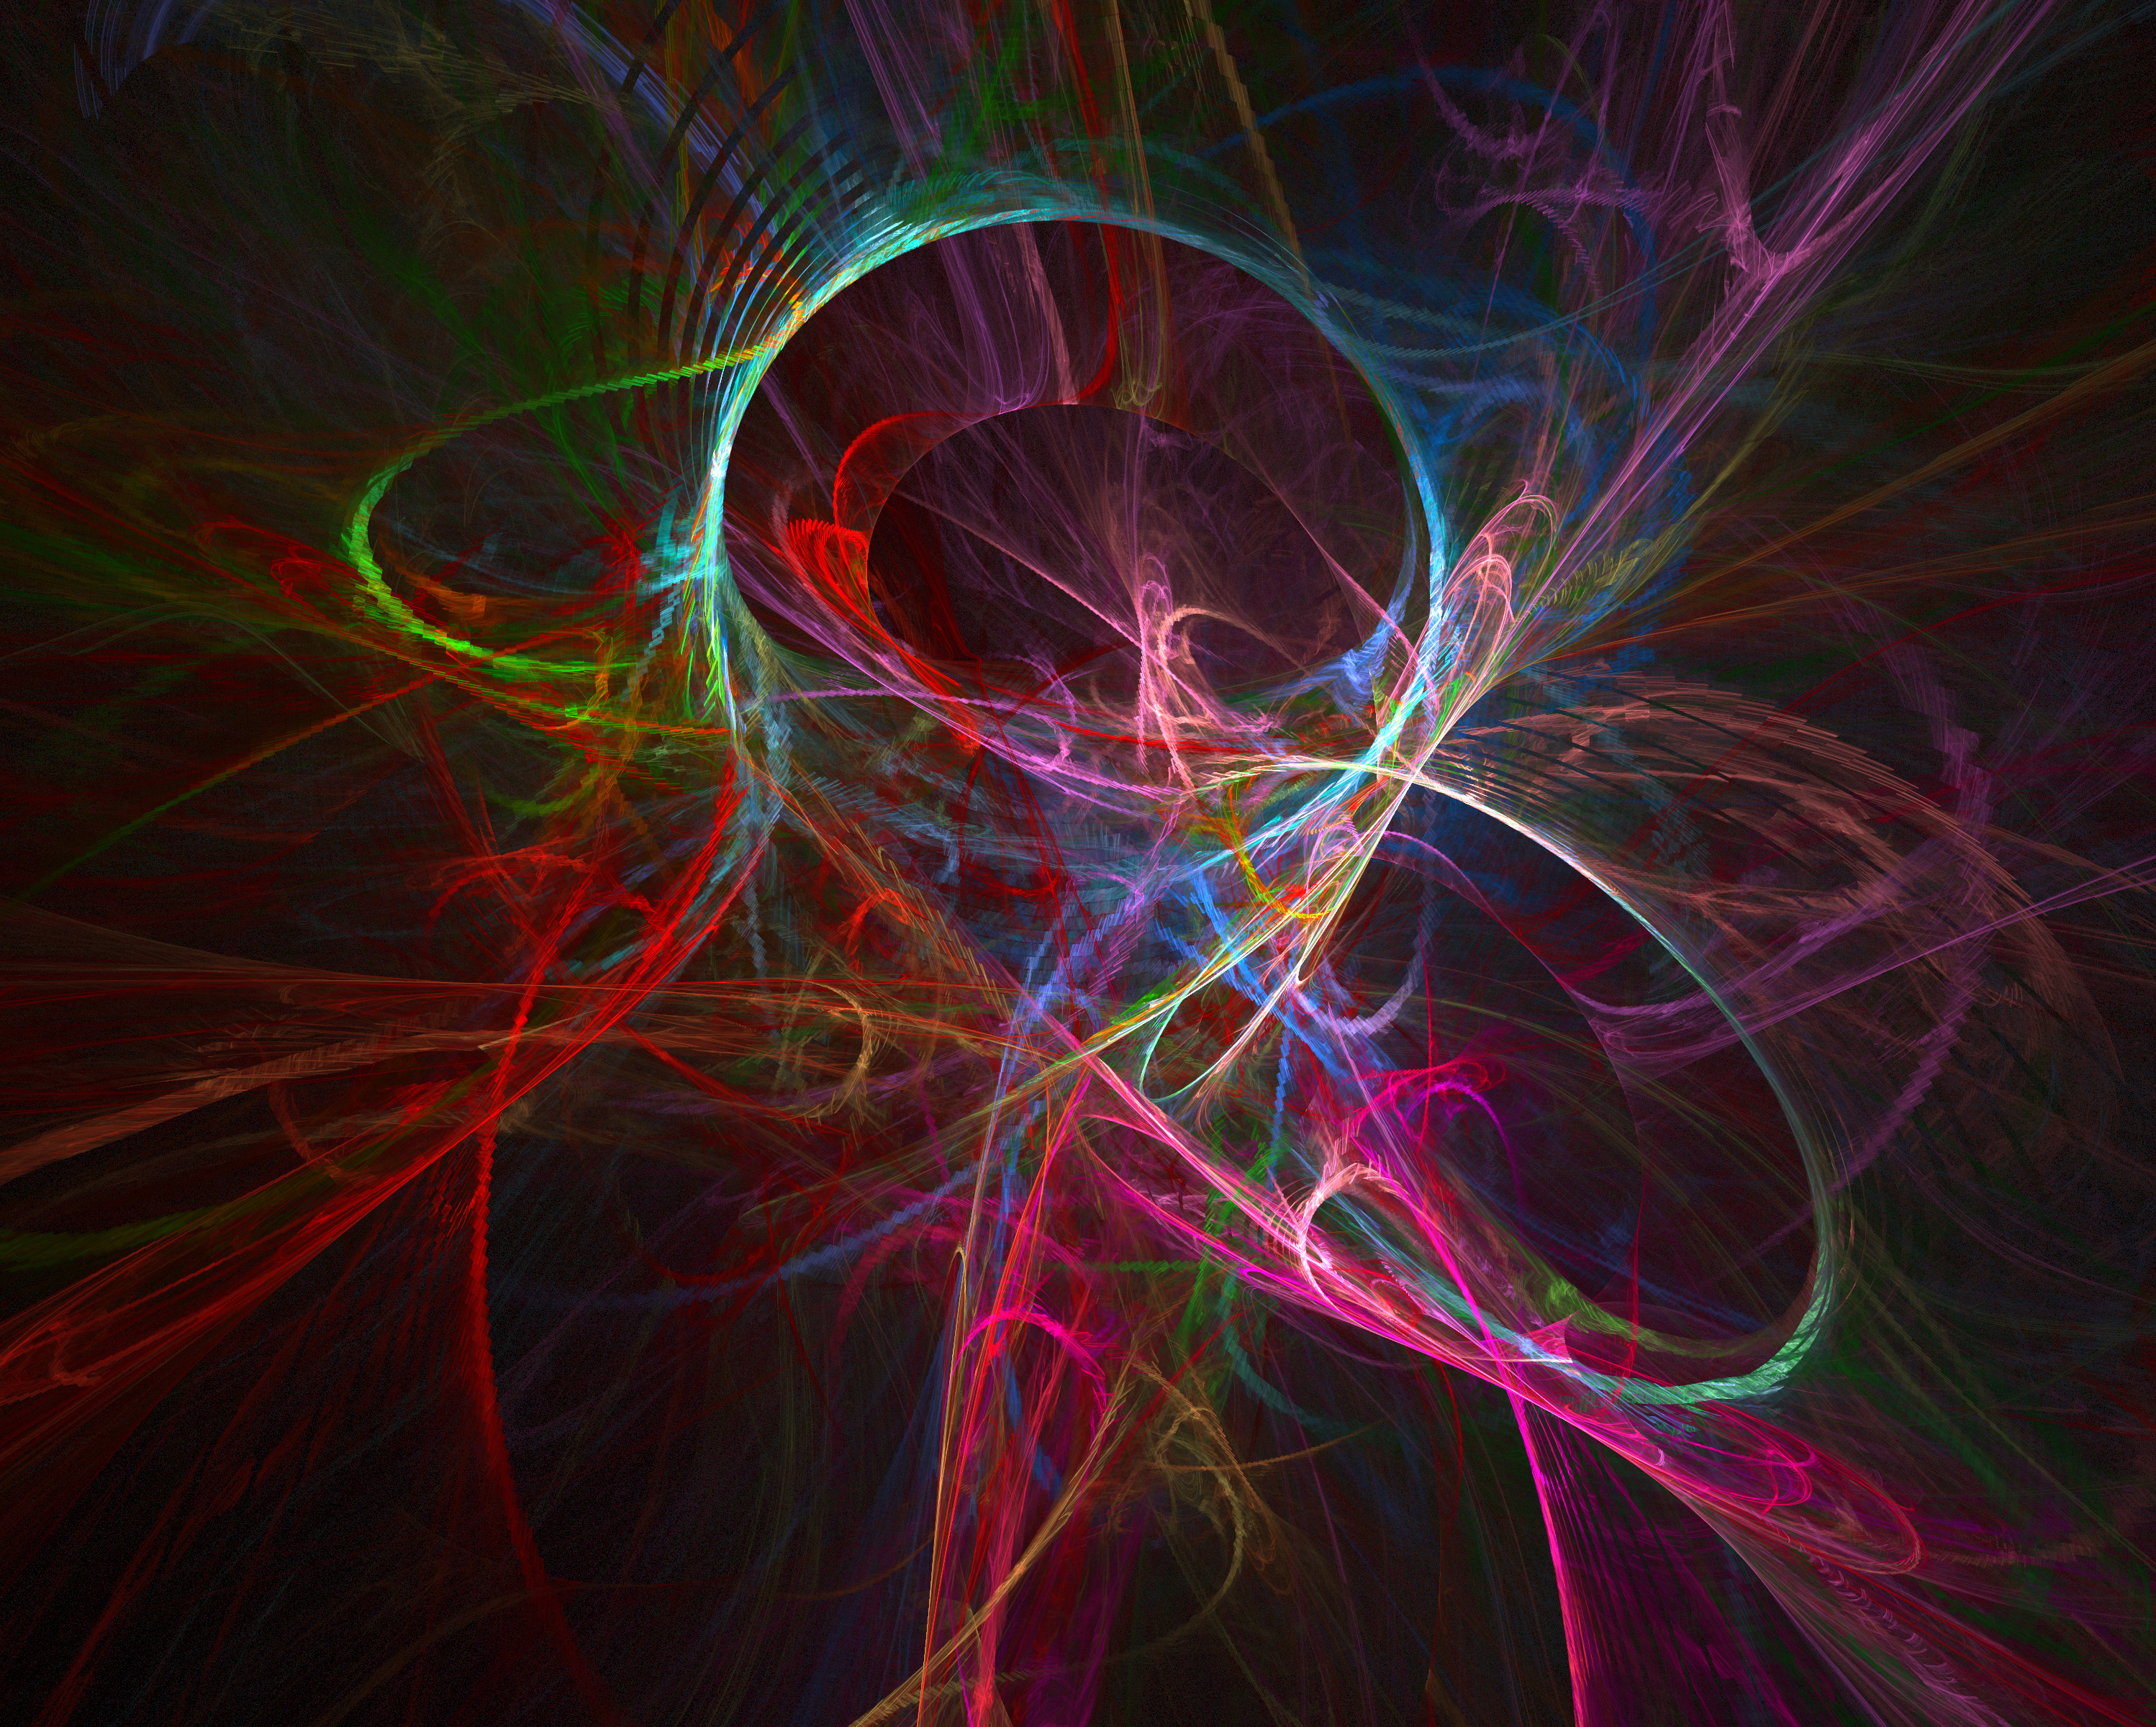 eye catching fractal background with chaotic curved lines exploding in all directions